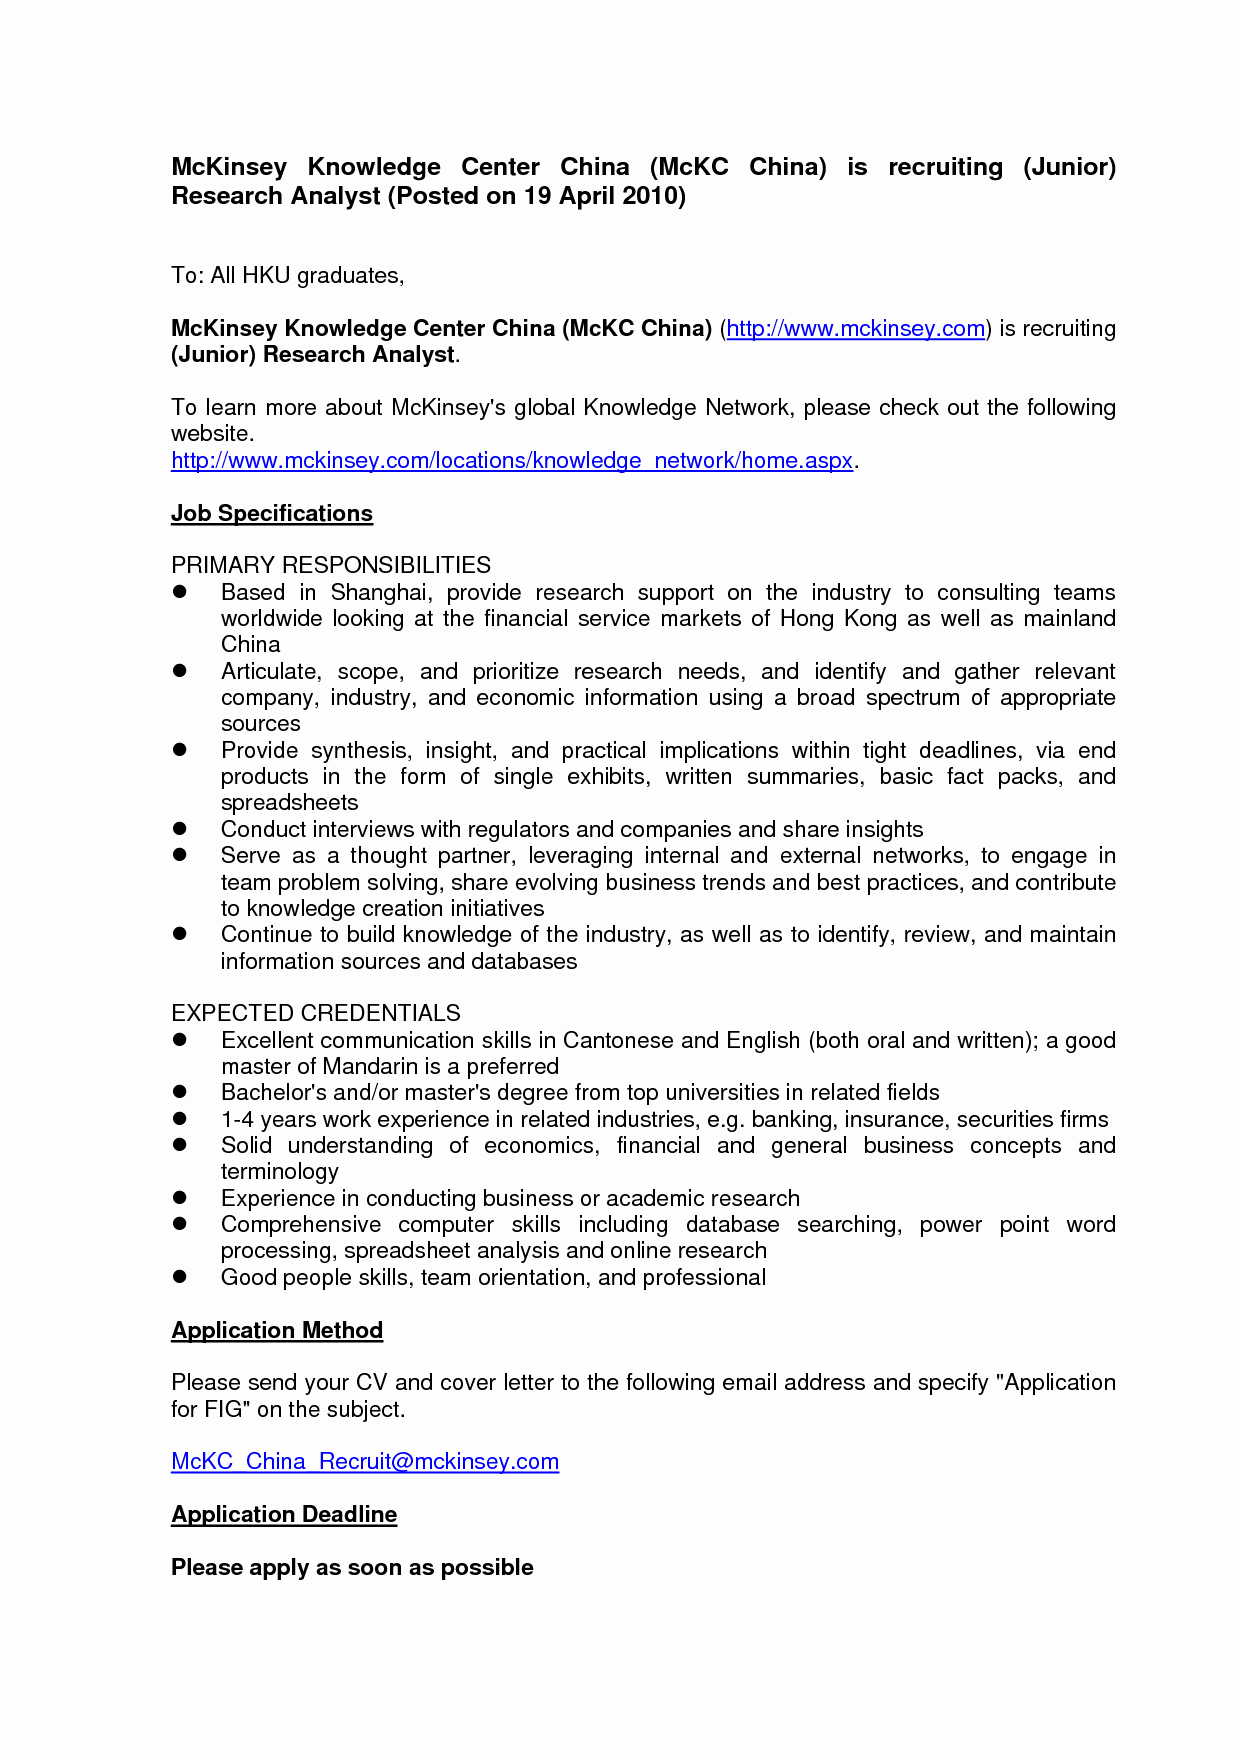 Cover Letter Template for It Job - Resume Cover Letter Template Word Unique Od Consultant Cover Letter